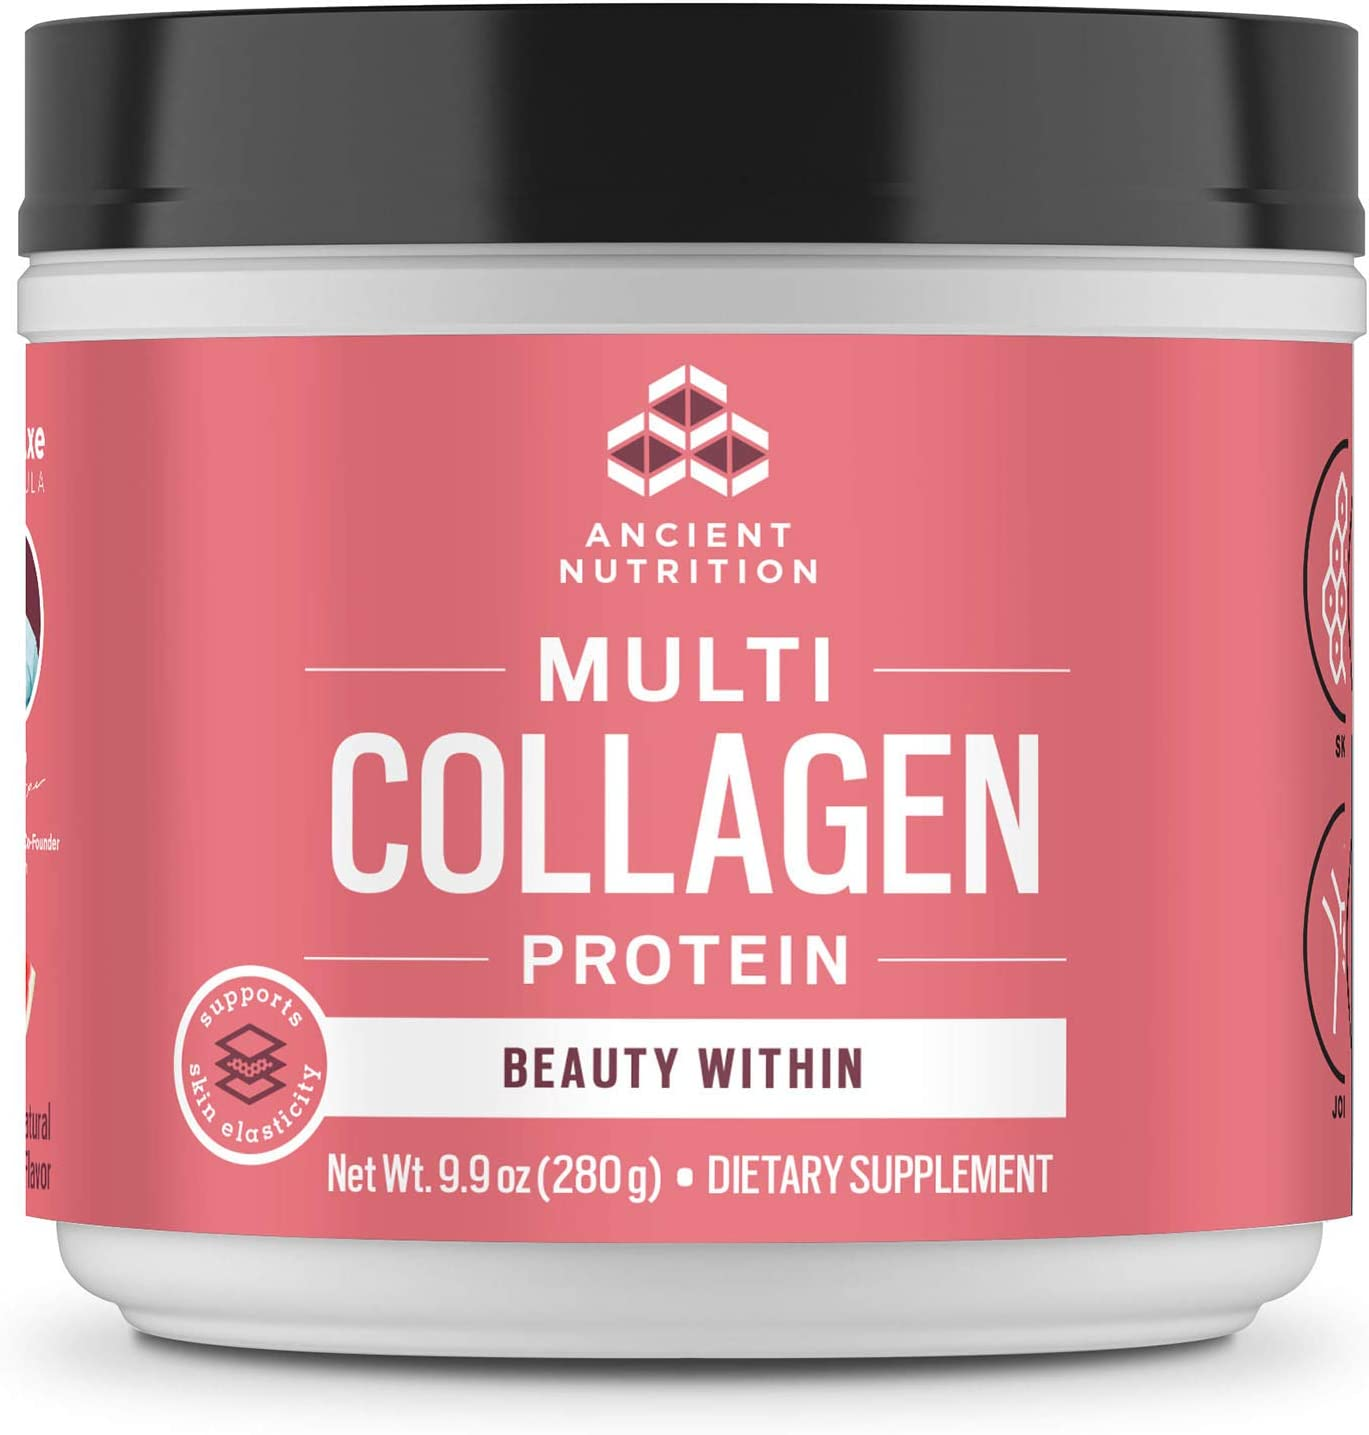 Ancient Nutrition Multi Collagen Protein Powder Beauty Within